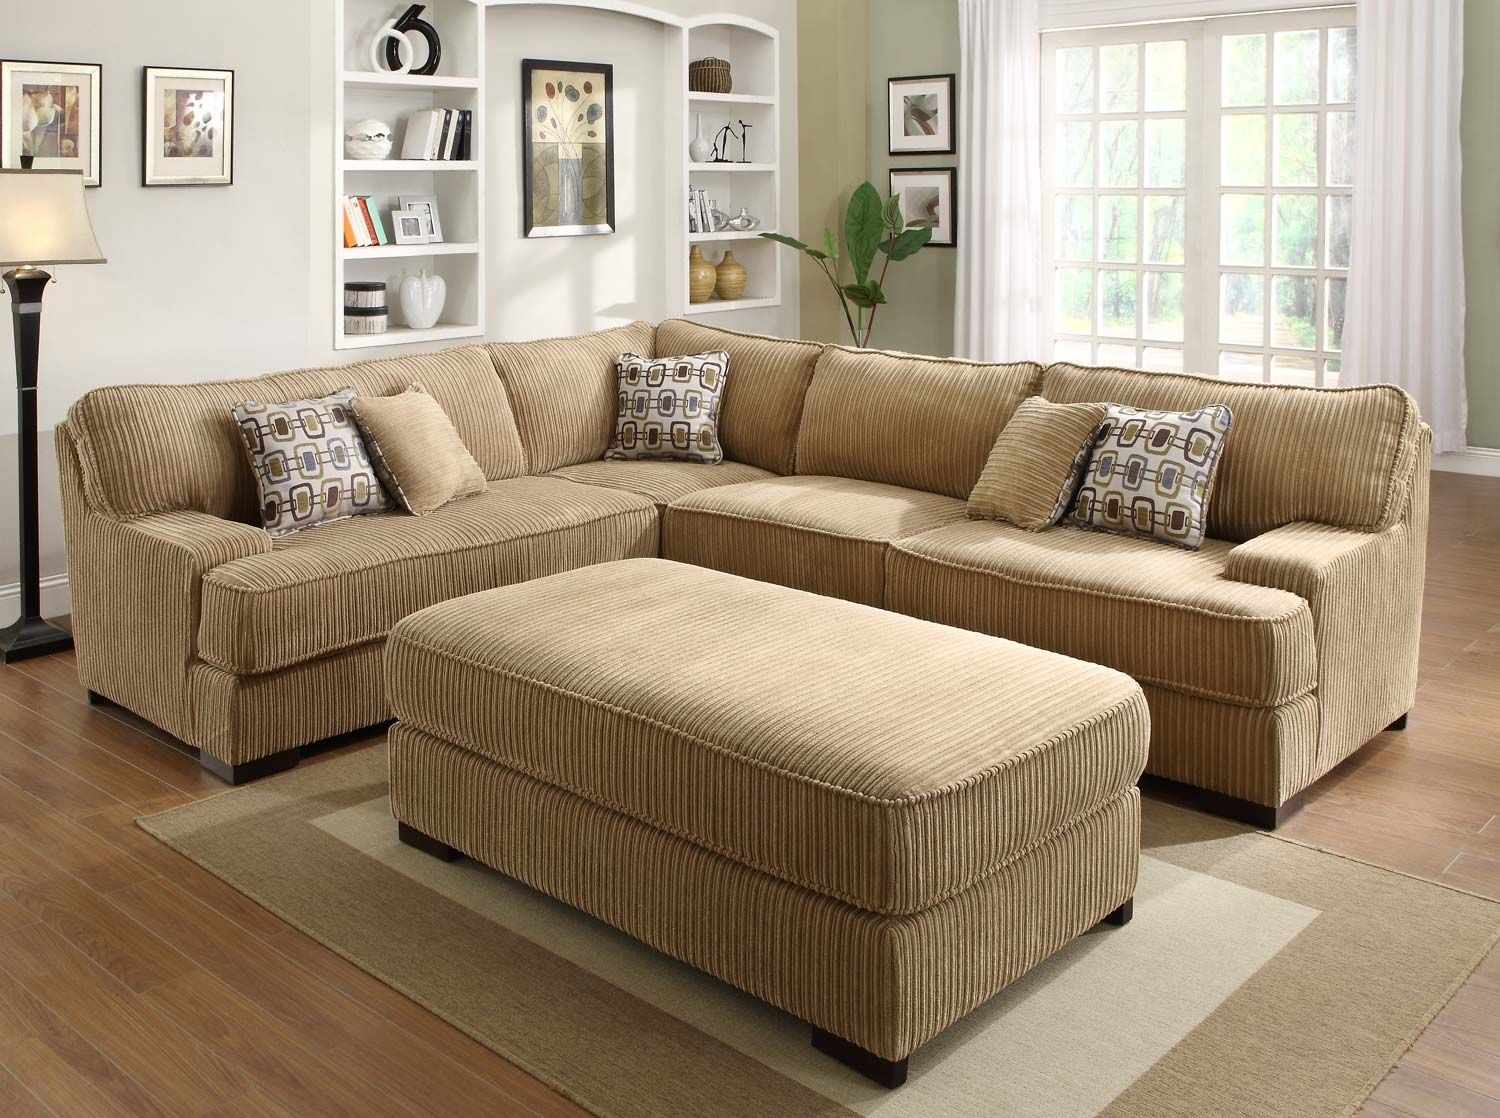 Sofa Beach Style Light Brown Sectional Sofa Mamagreen Brand Why You Should Choose Tillary Sofa For Y Small Sectional Sofa Cheap Living Room Sets Sectional Sofa